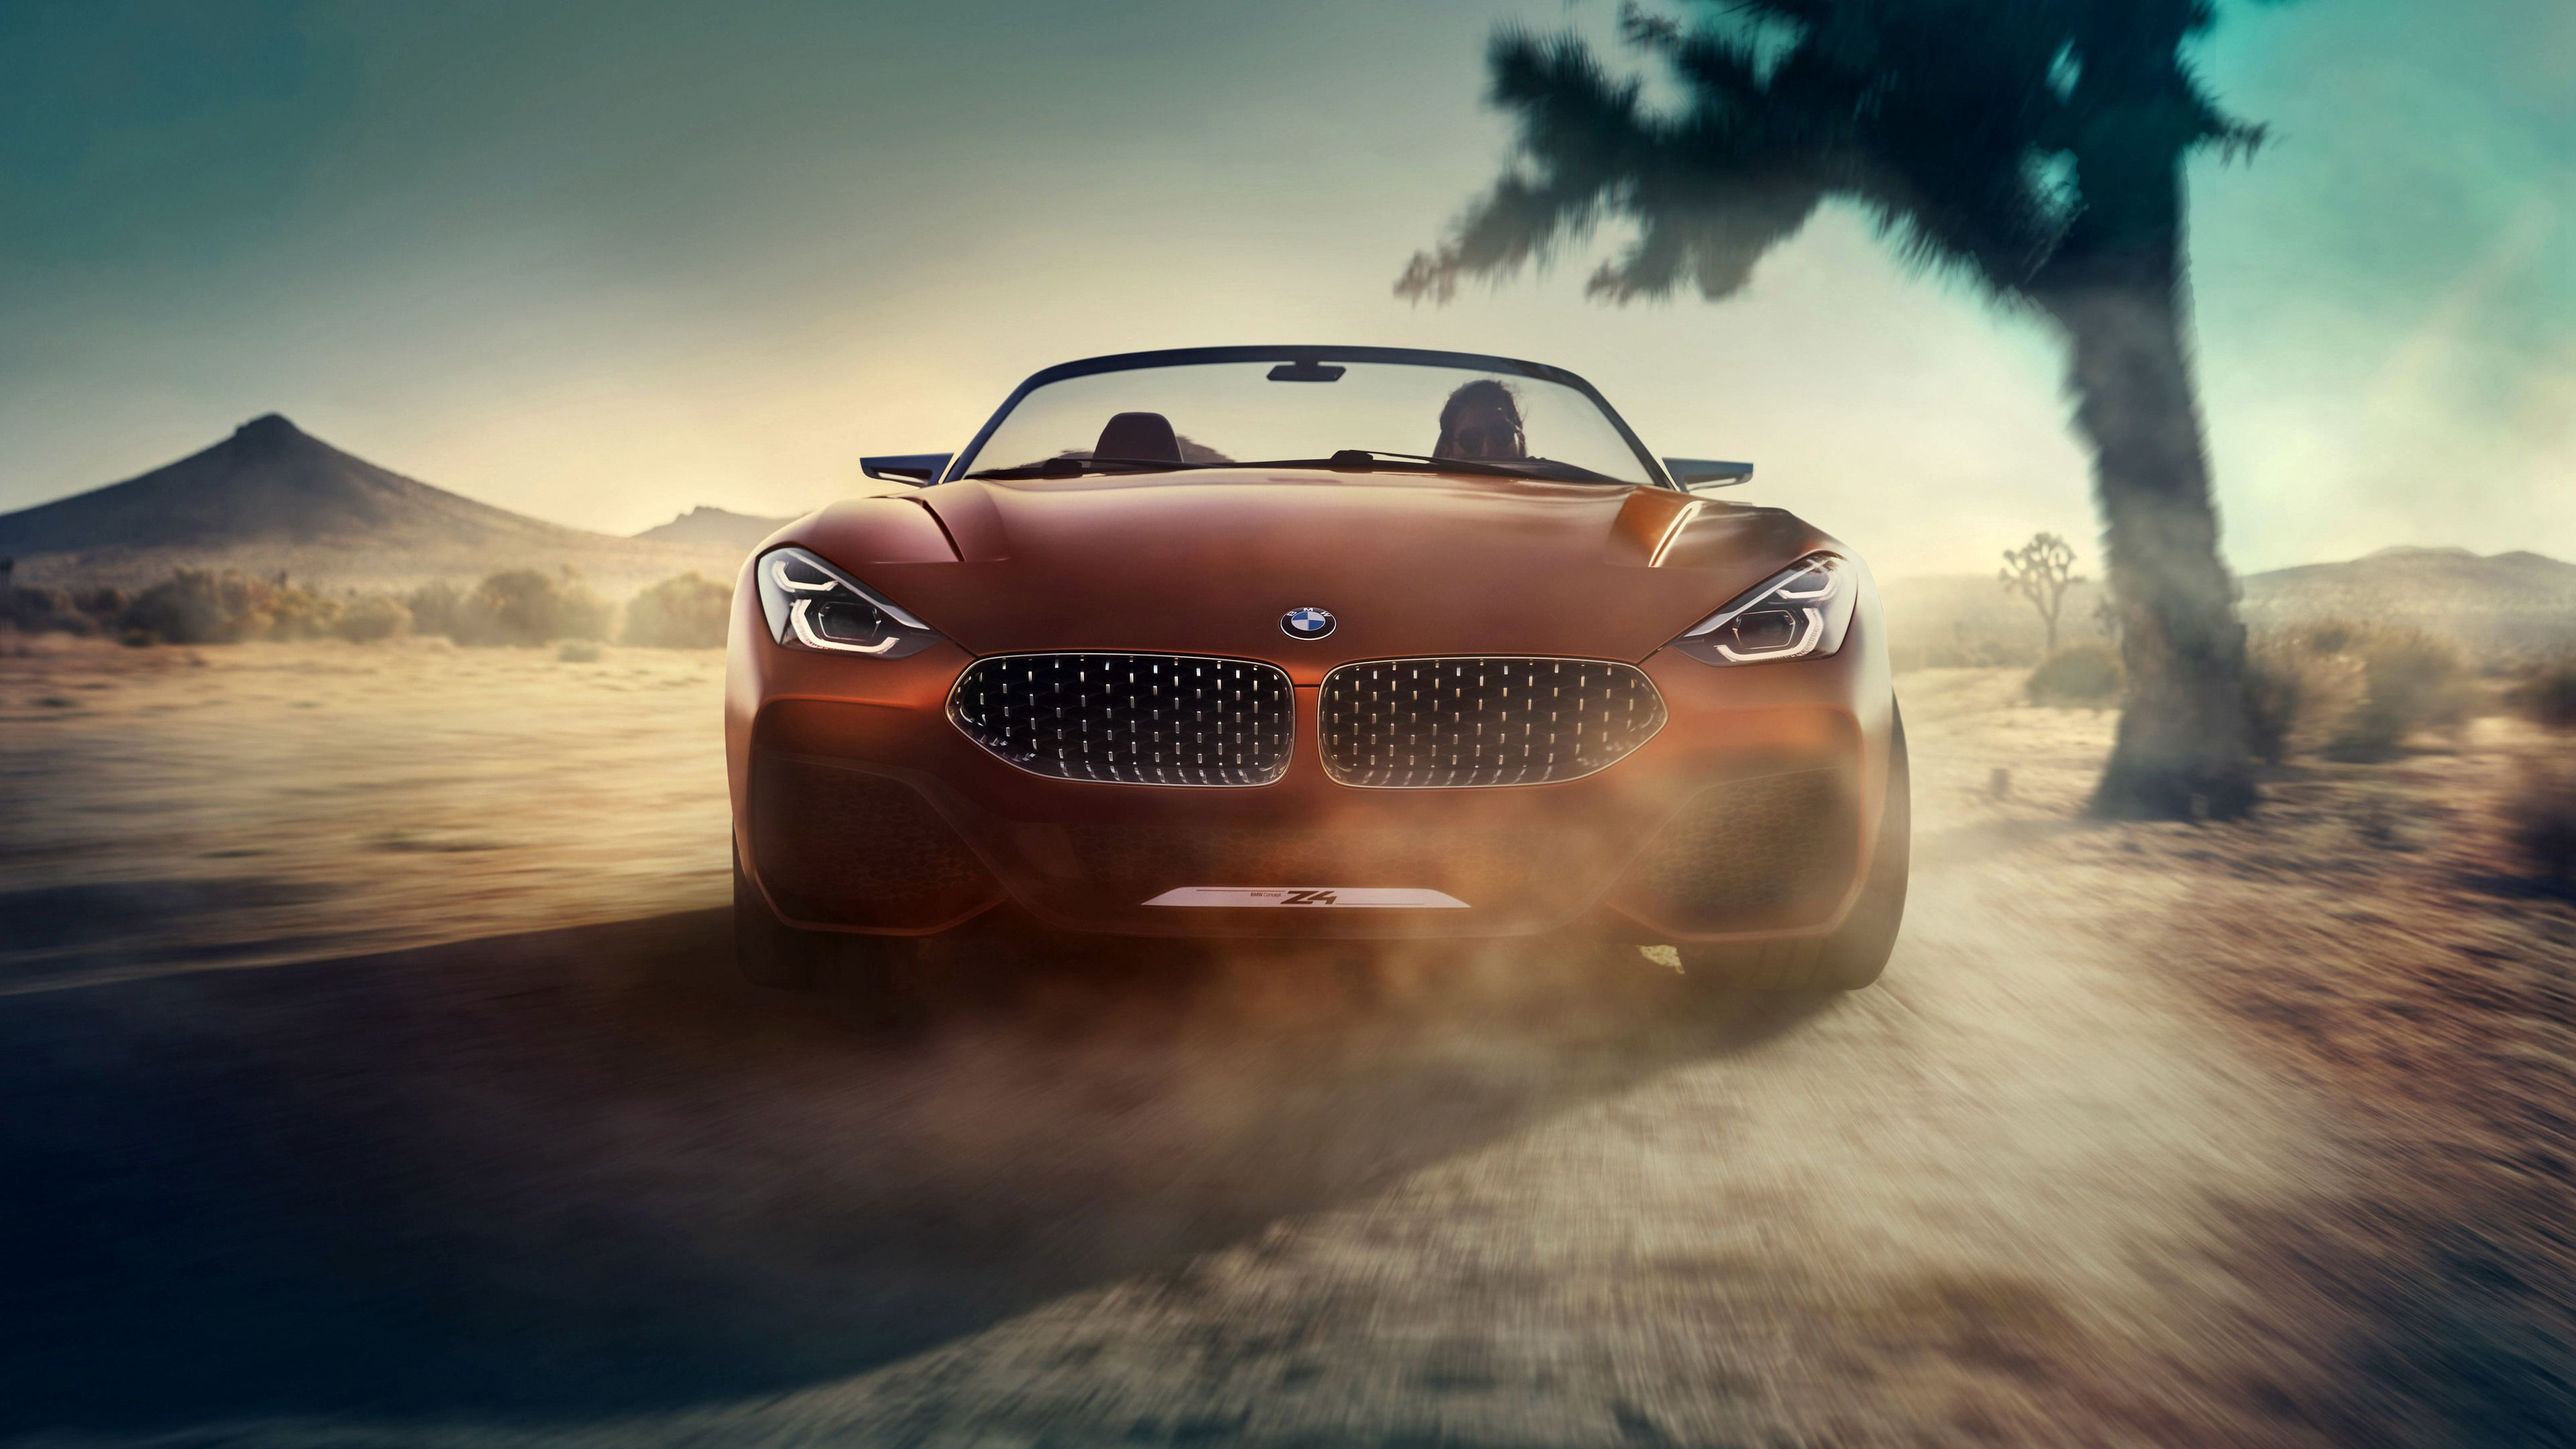 Bmw Concept Z4 4k Front Hd Wallpapers Concept Cars